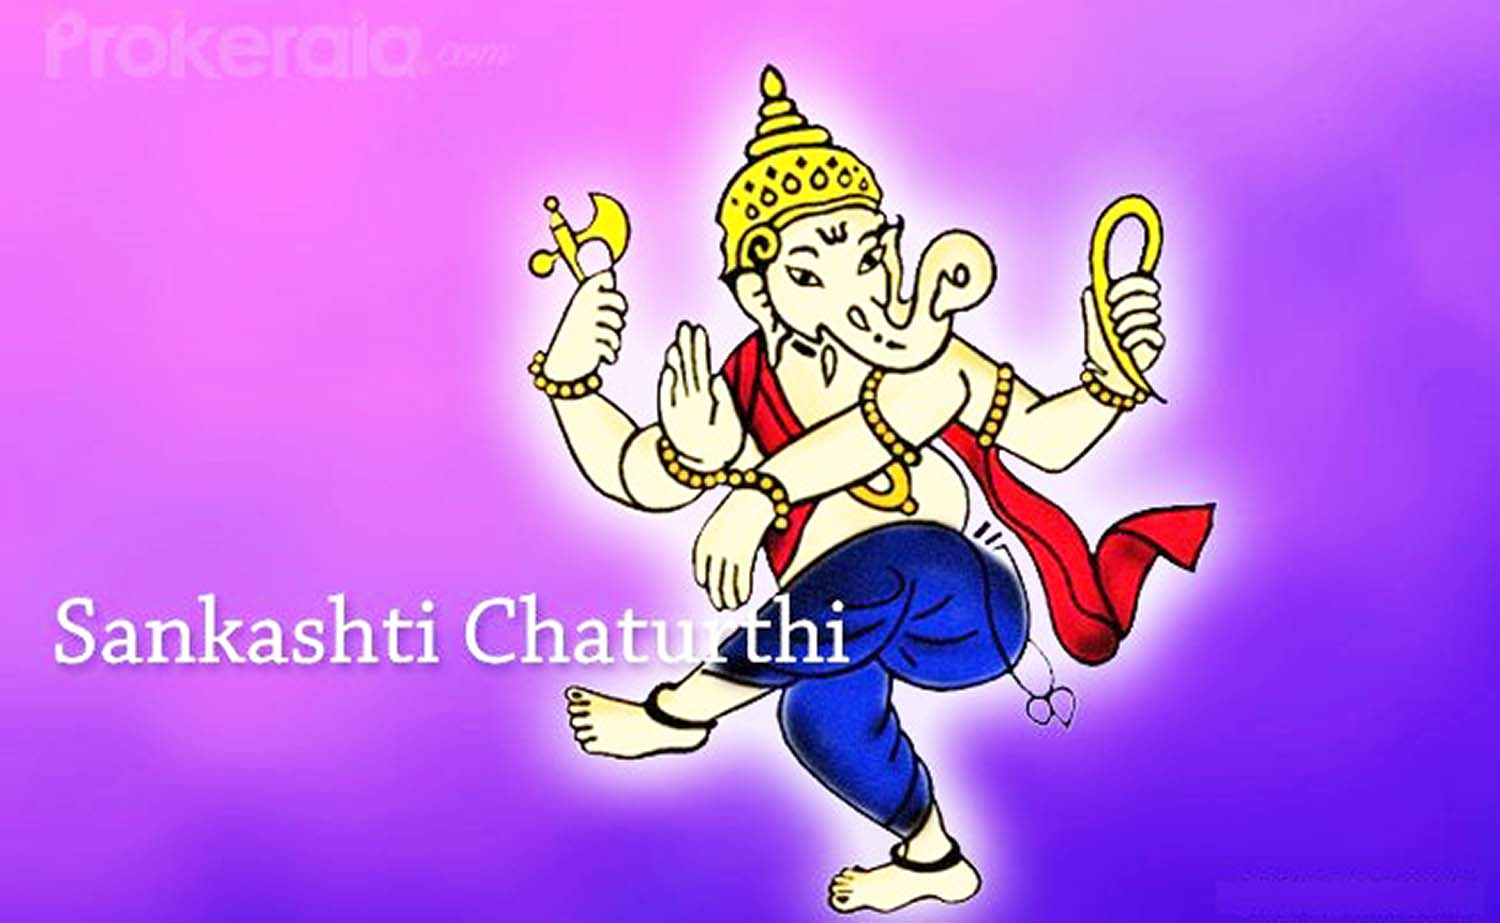 happy sankashti chaturthi